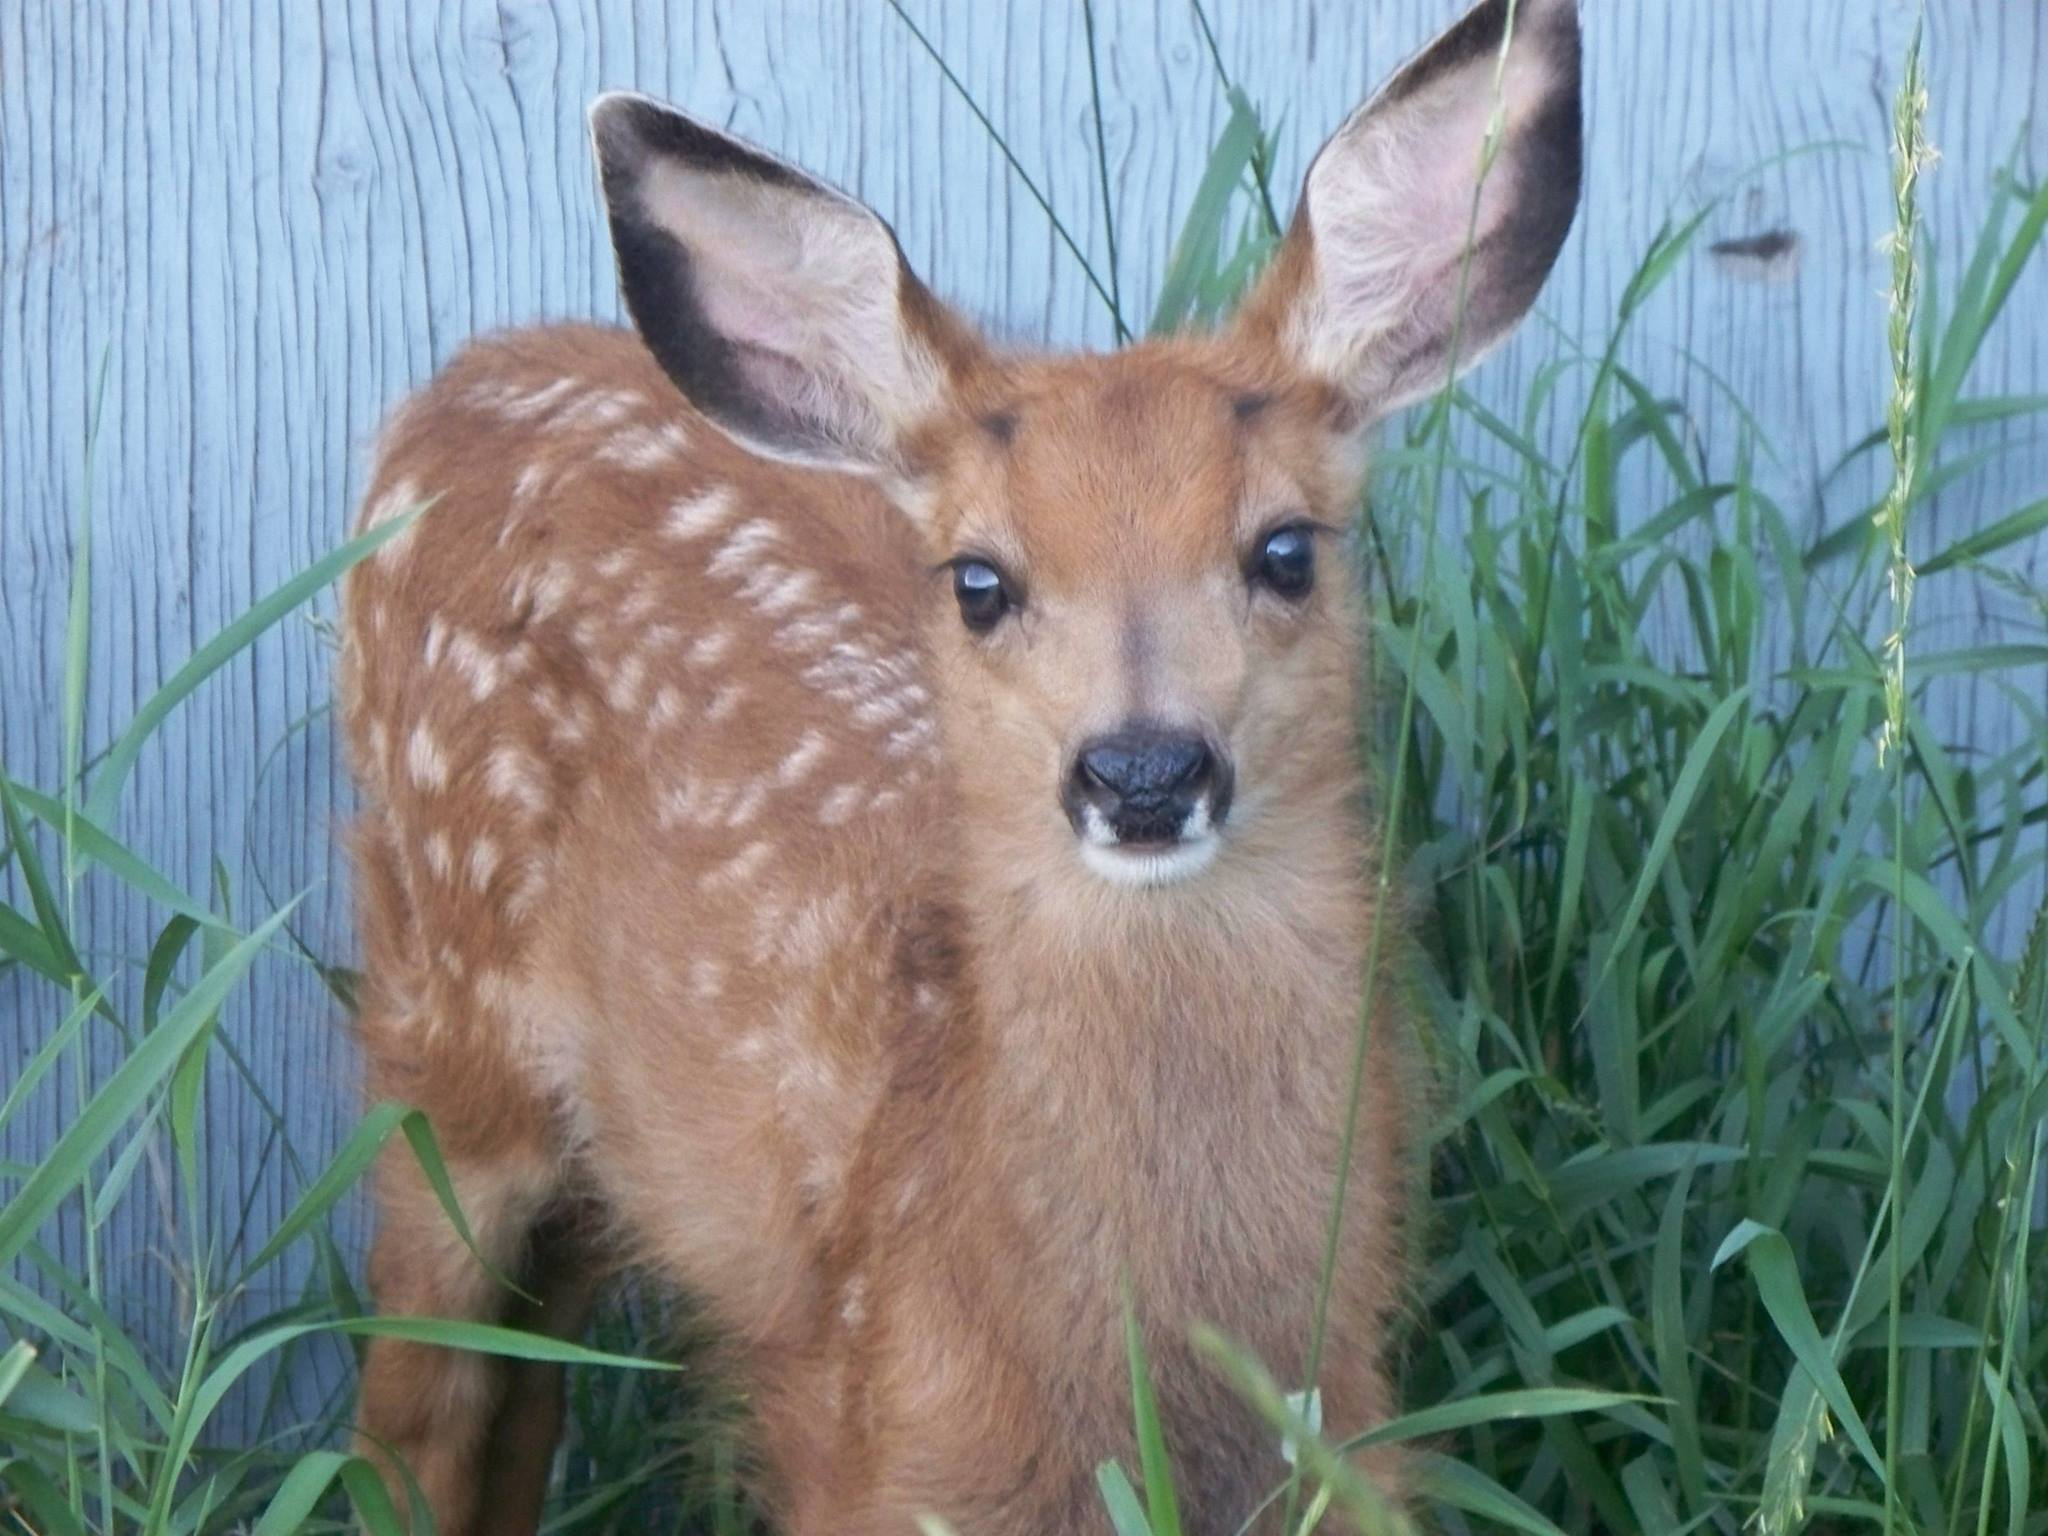 004 - White-Tailed Deer Fawn